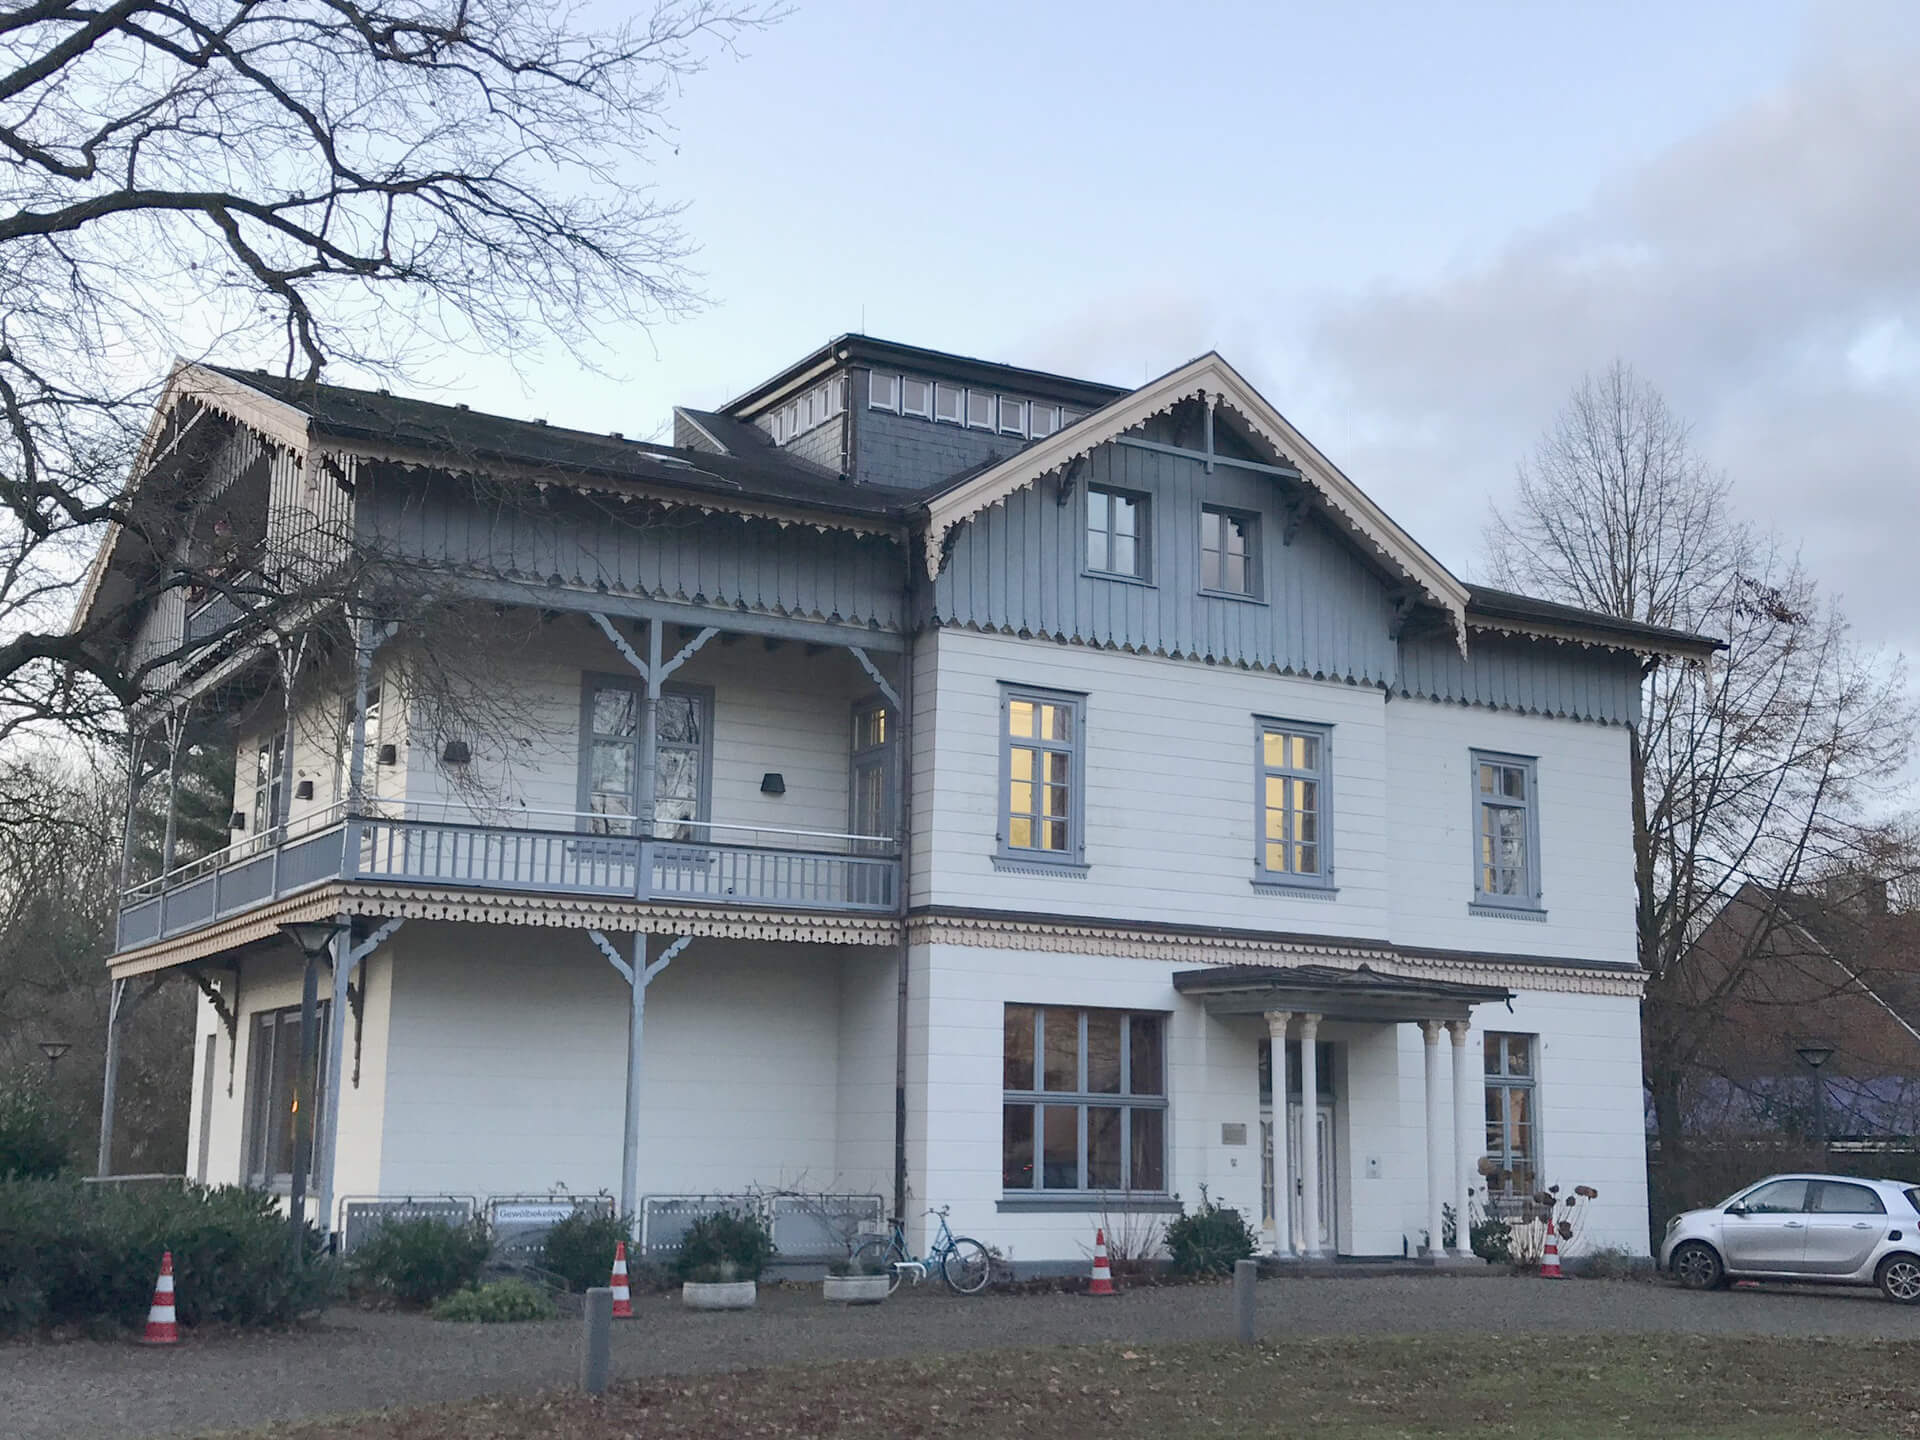 Villa Wuppermann